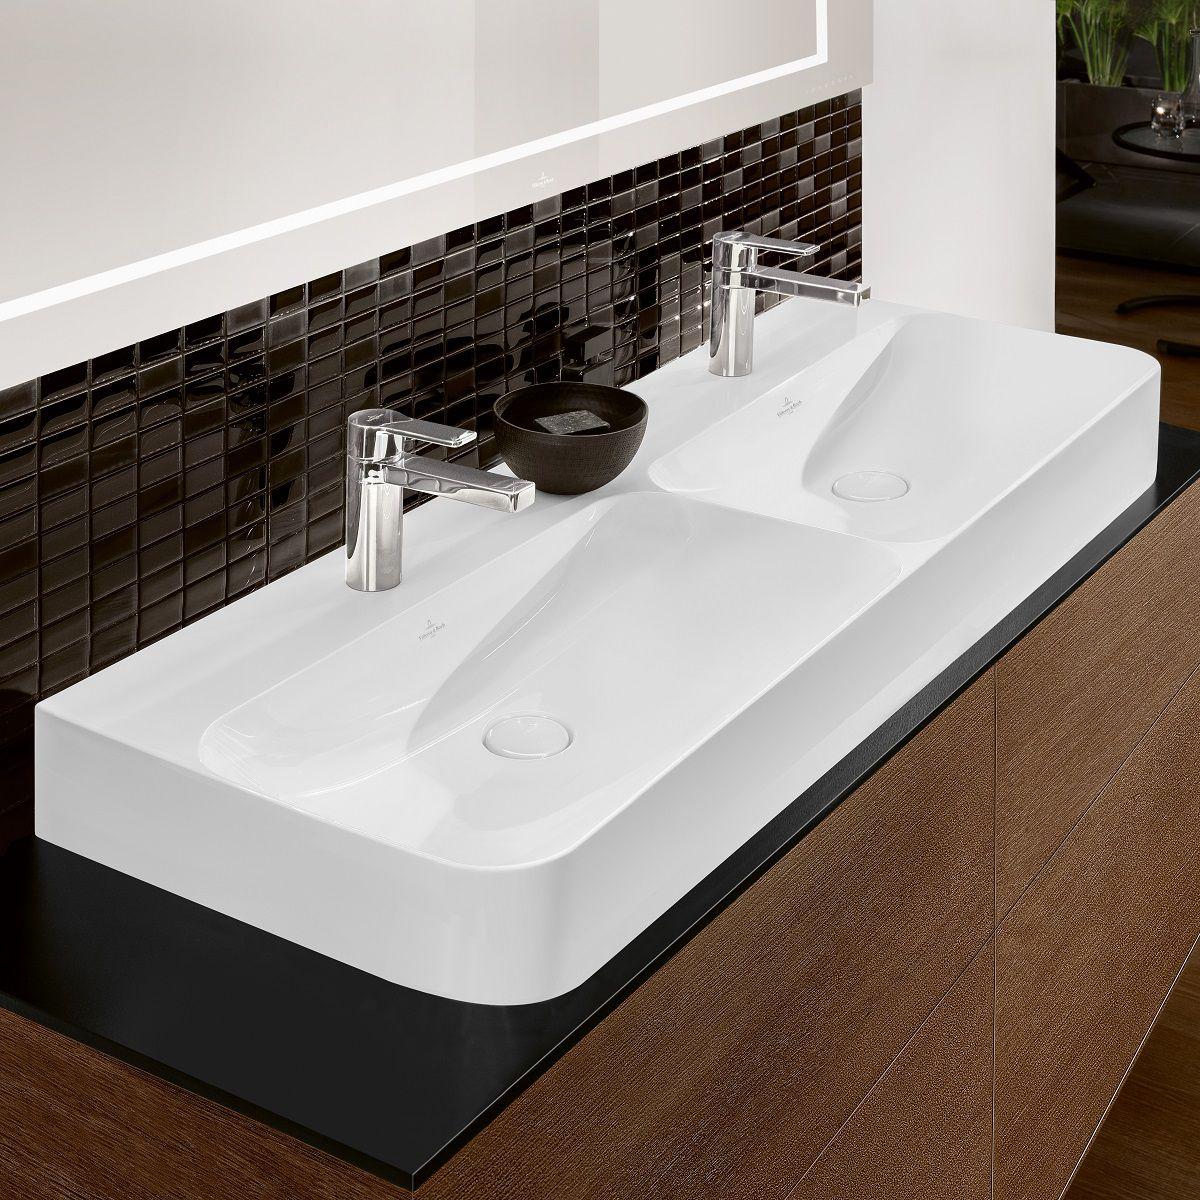 Boch Finion Double Bathroom Sink